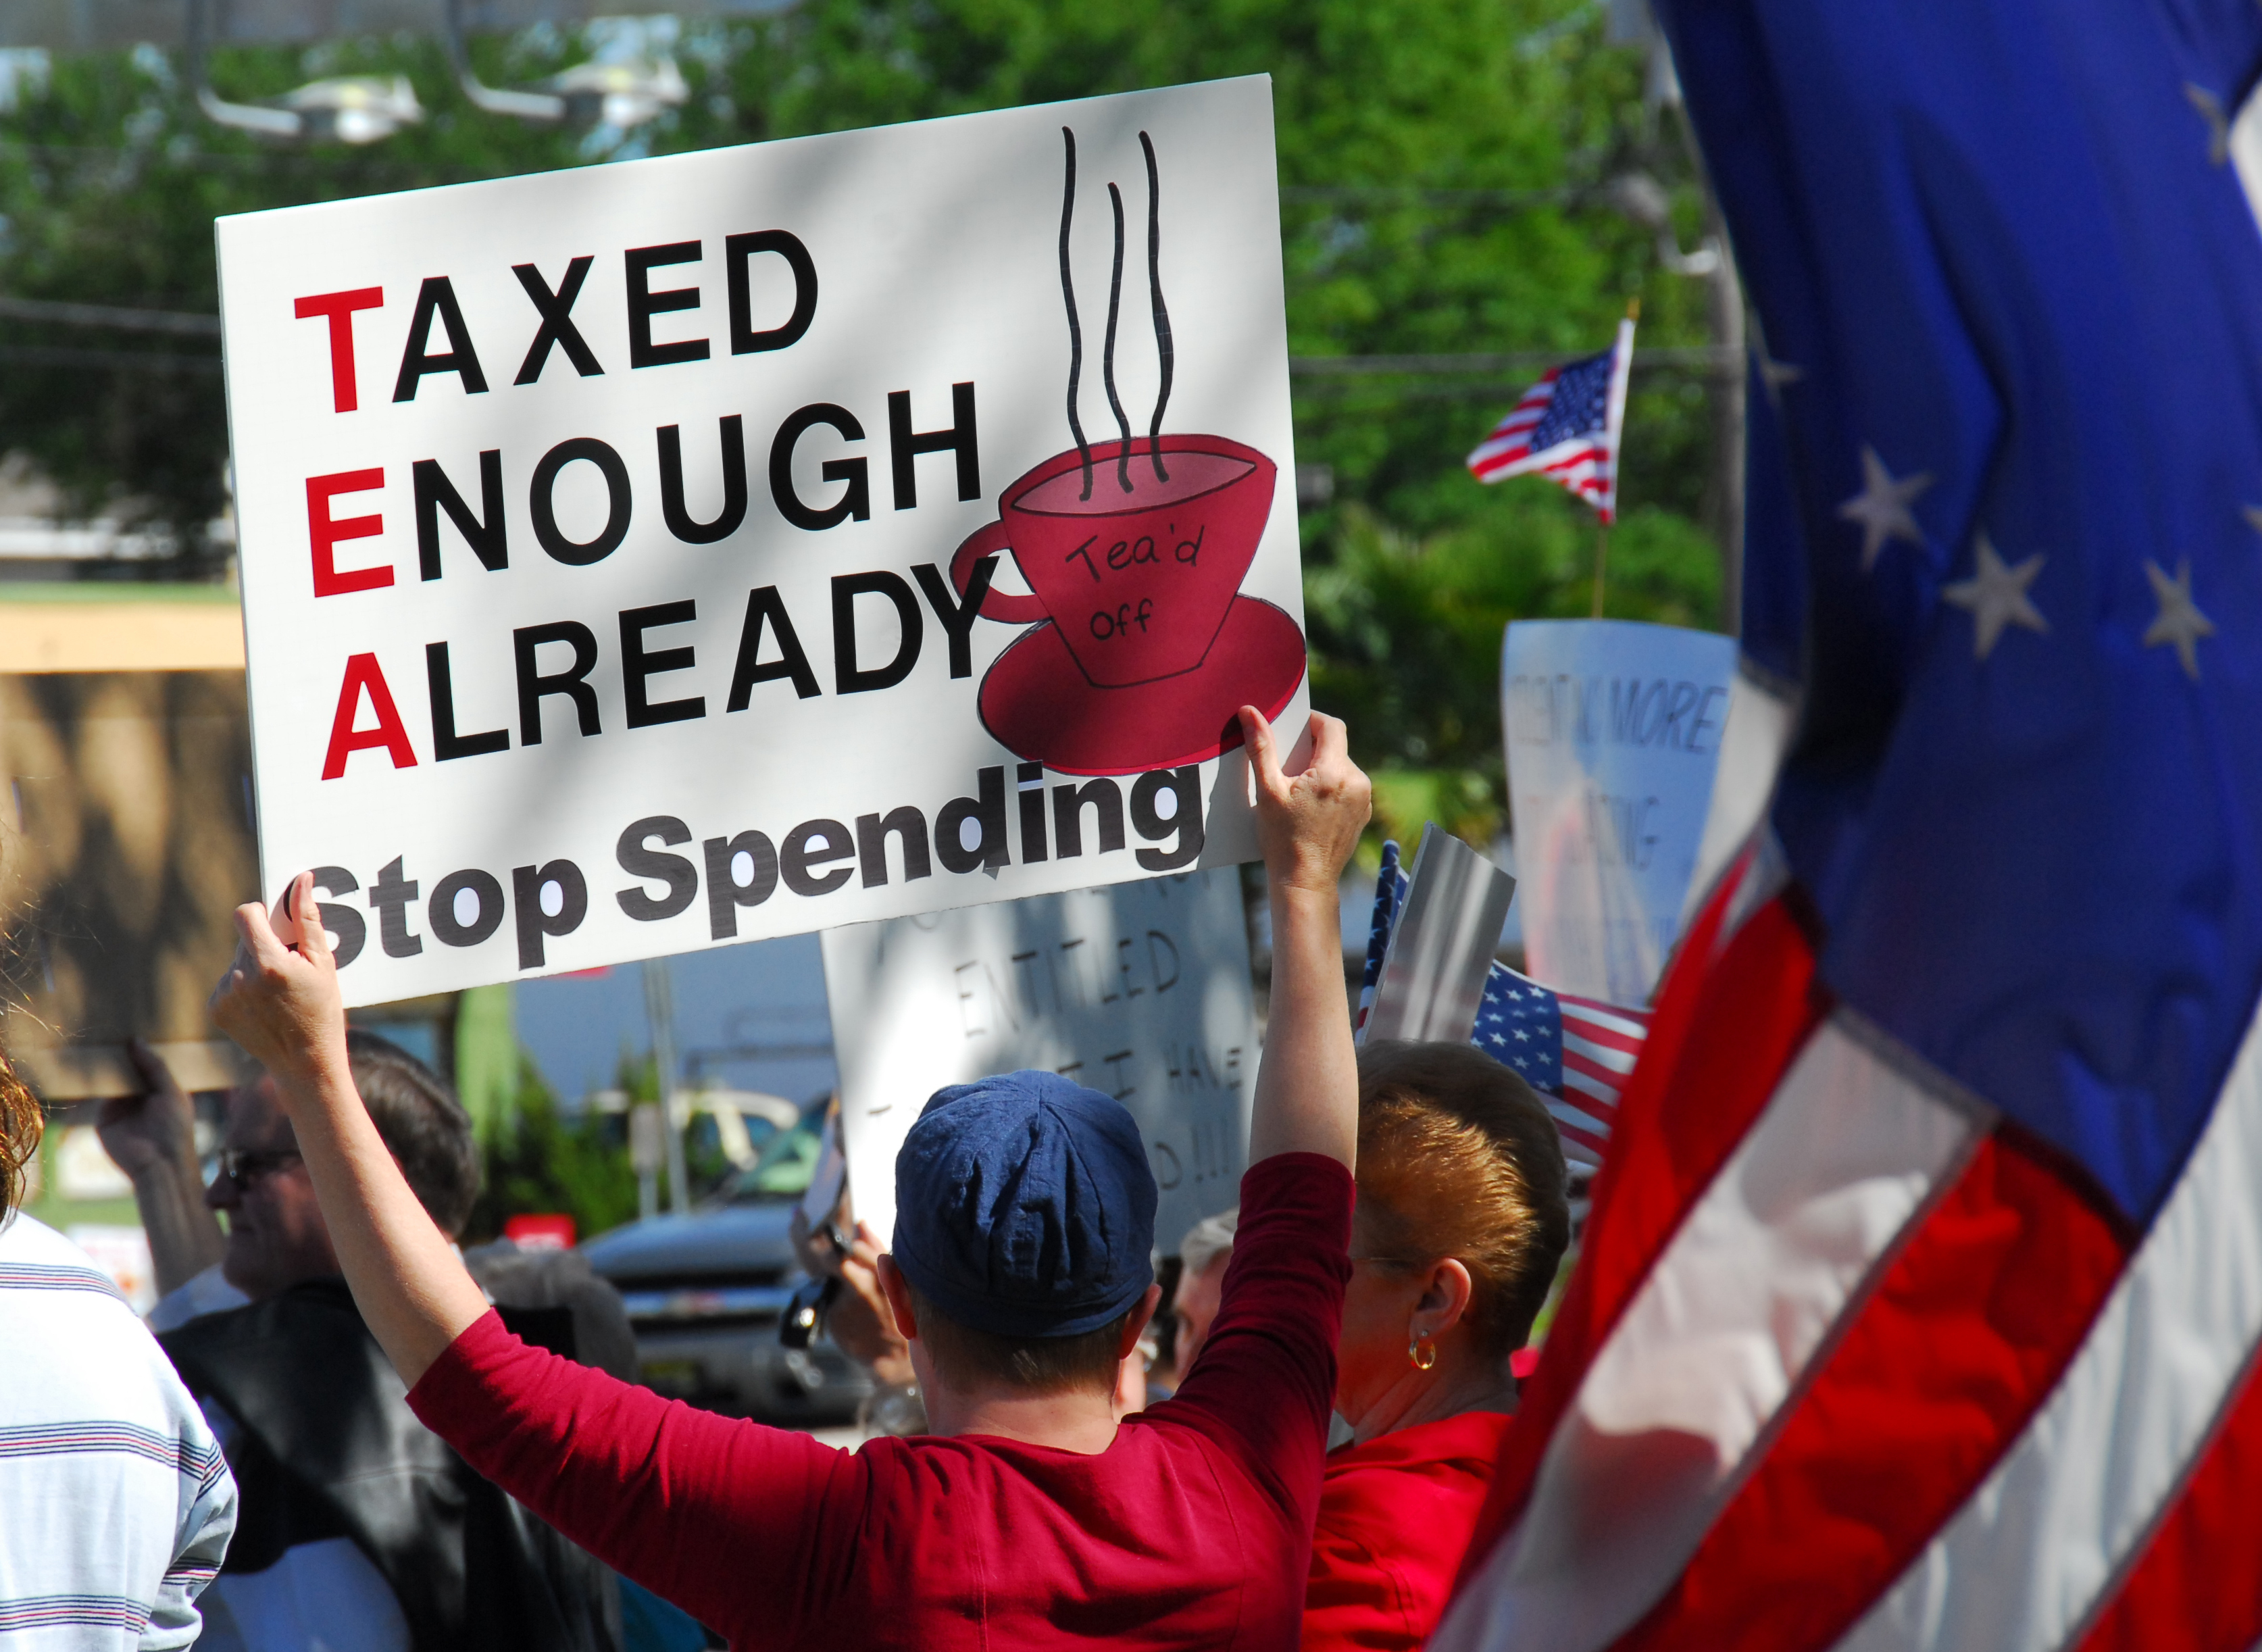 PENSACOLA, FLORIDA - APRIL 15: Protesters attend nationwide rally against increased government spending in Pensacola, Florida on tax day. Via Shutterstock.